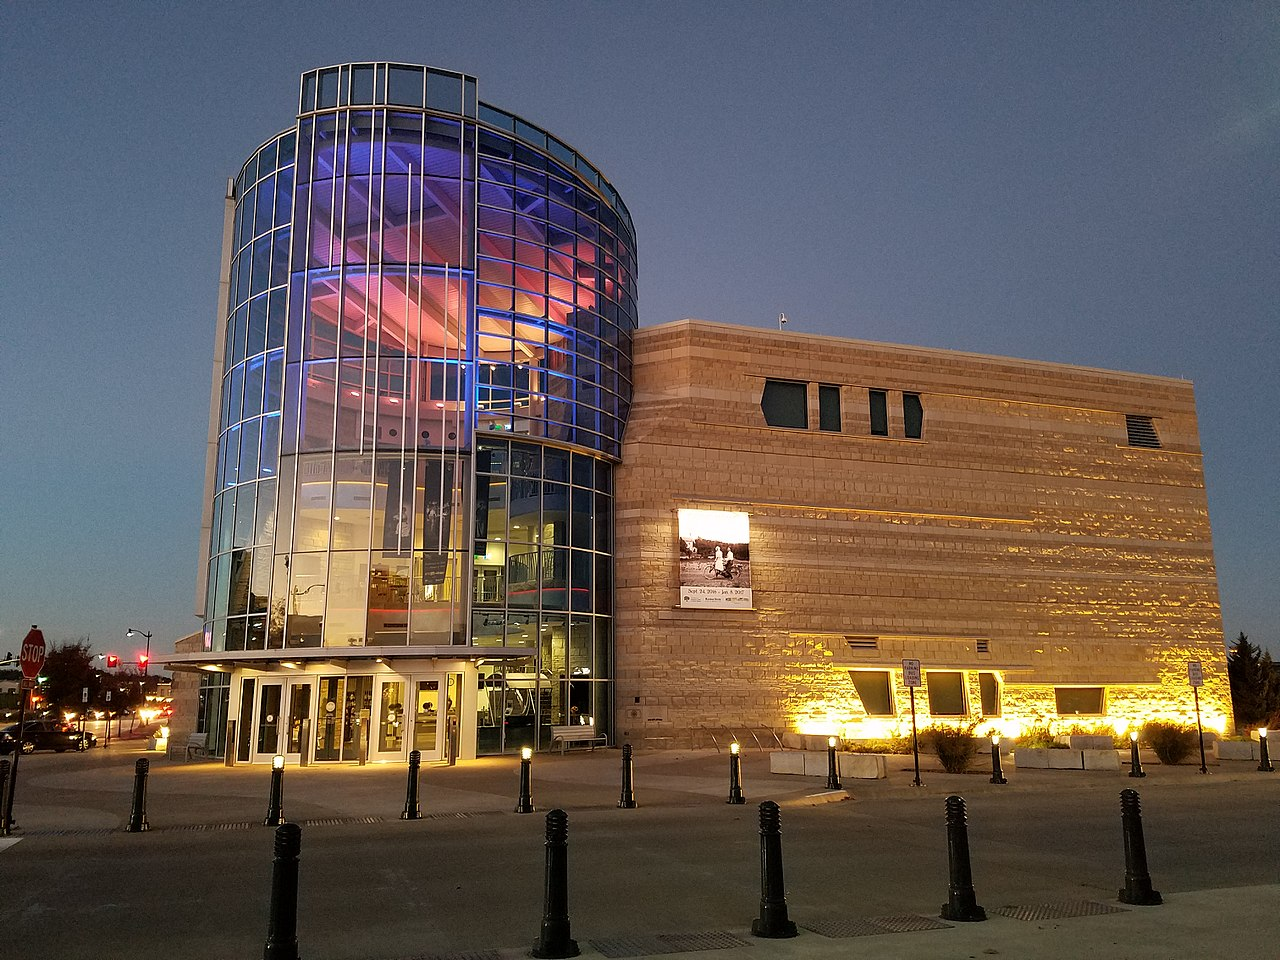 incredible Place To Visit In Kansas-Flint Hills Discovery Center